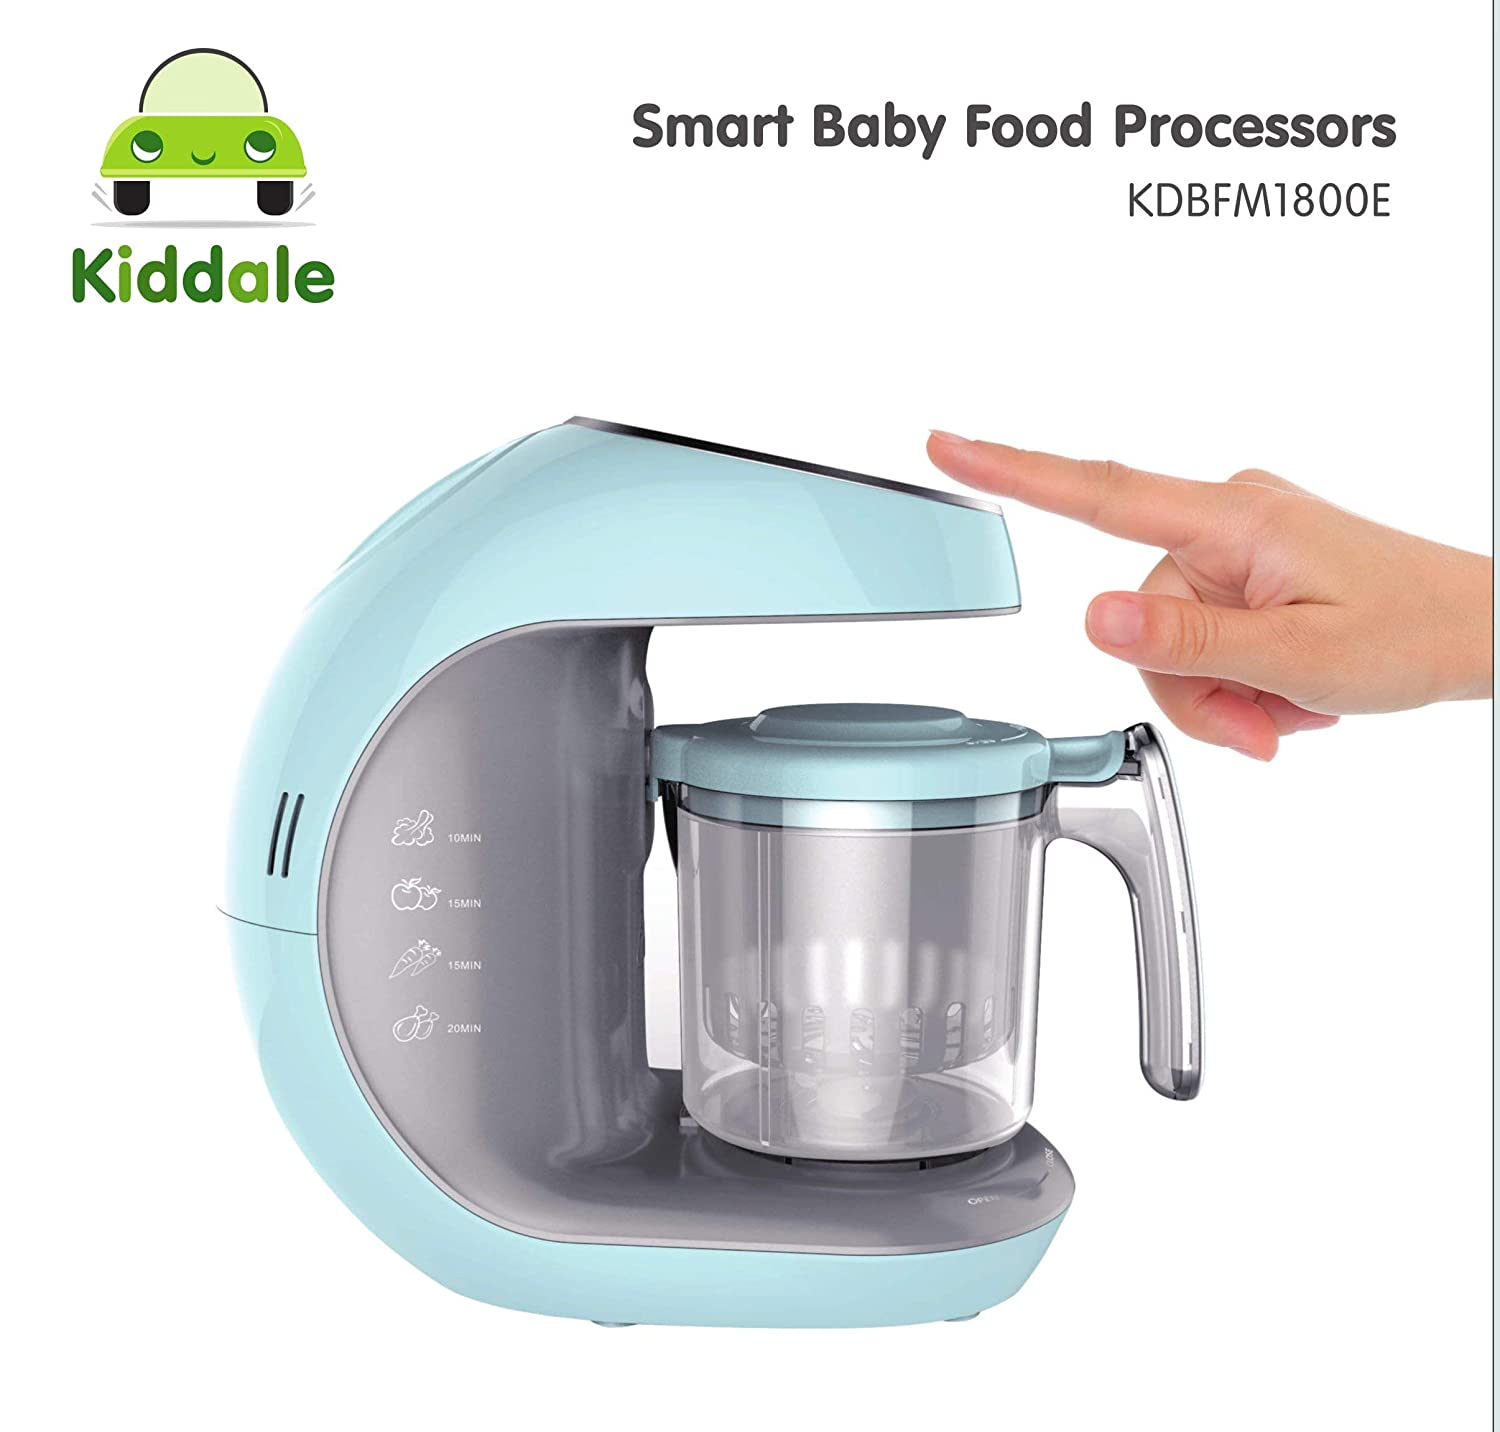 Kiddale 5in1 Smart Digital Baby Food Processor, Blender or Food Processor? Or Combo?